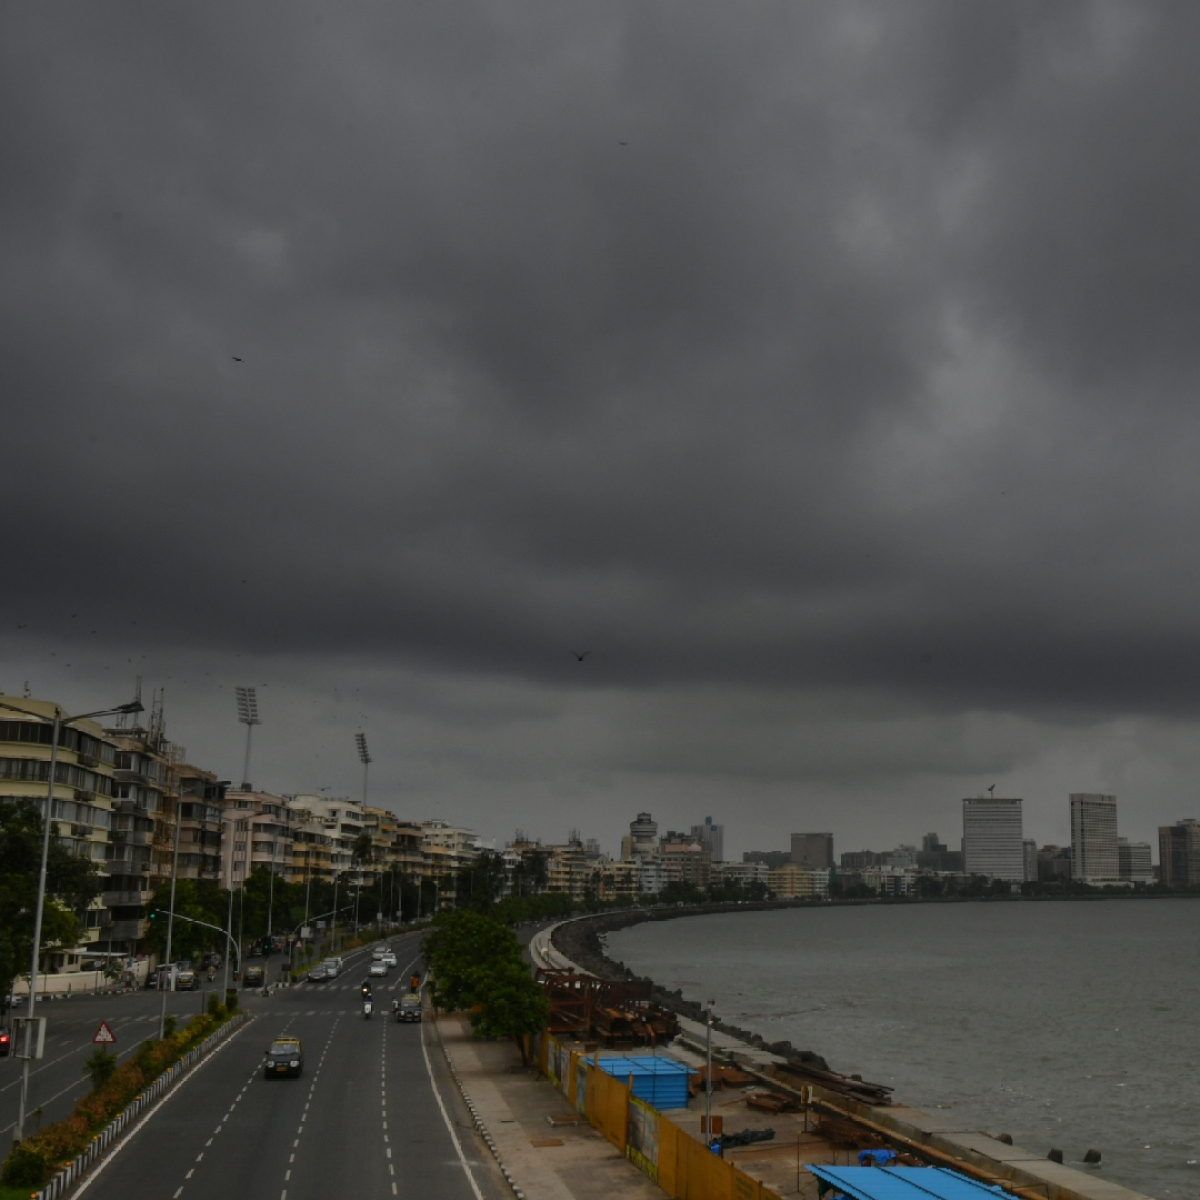 Mumbai weather update: IMD predicts cloudy sky with possibility of light rain or thundershowers